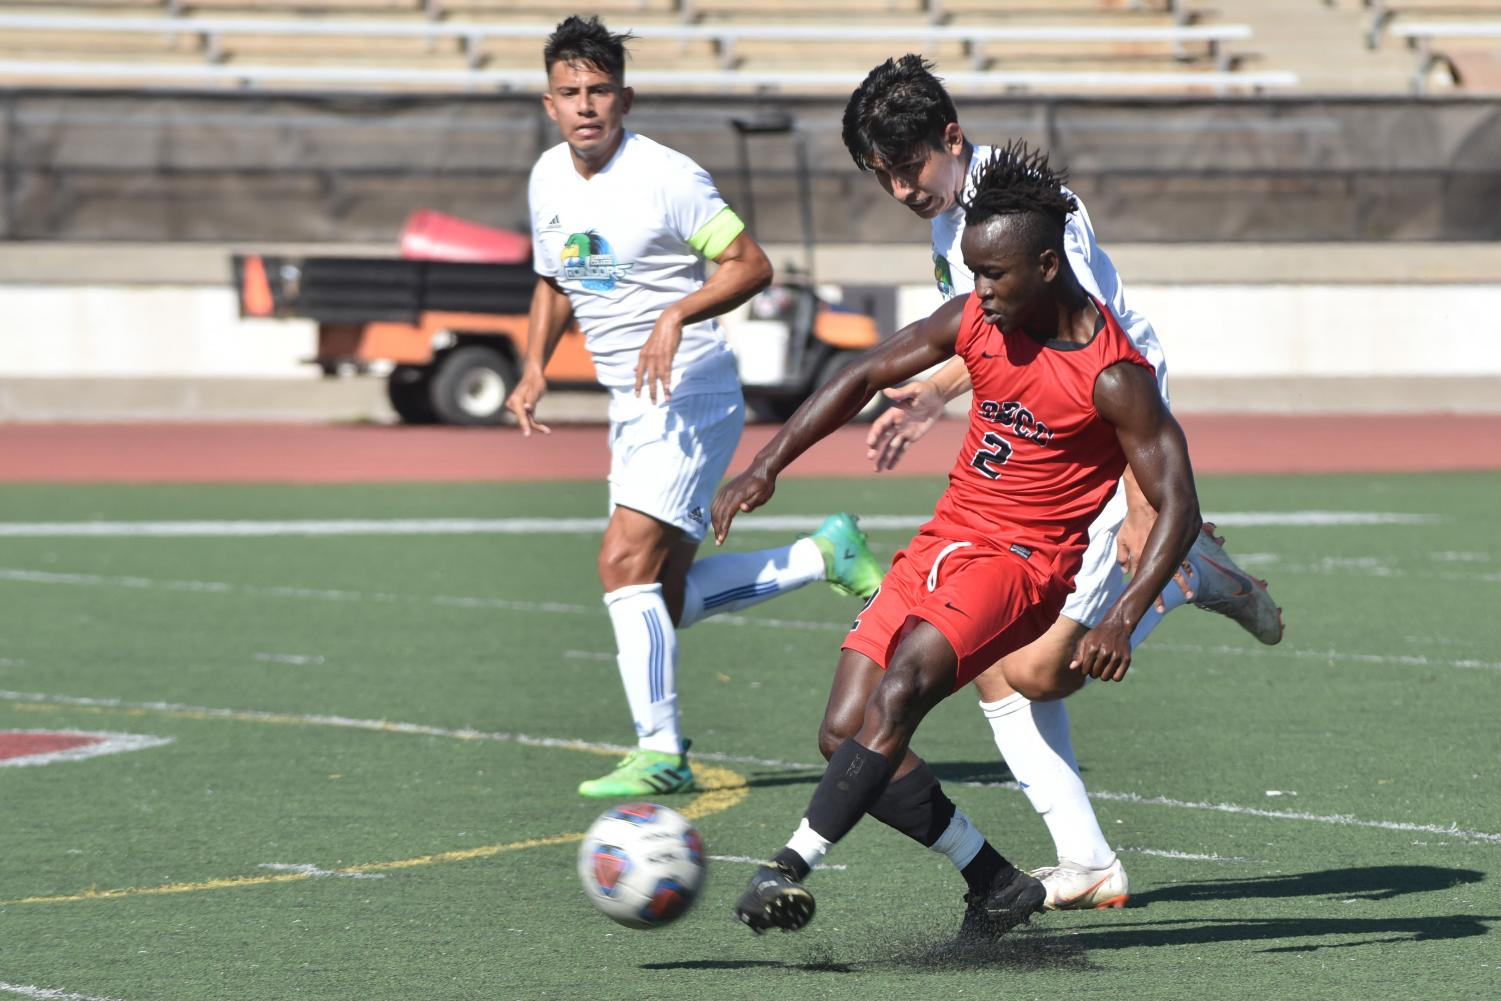 Oxnard College players follow close behind City College player Ameyawu Muntari (No.2) as he passes the ball on Tuesday, Oct. 30 at Santa Barbara City College's La Playa Stadium. The Condors and Vaqueros tied 1-1.